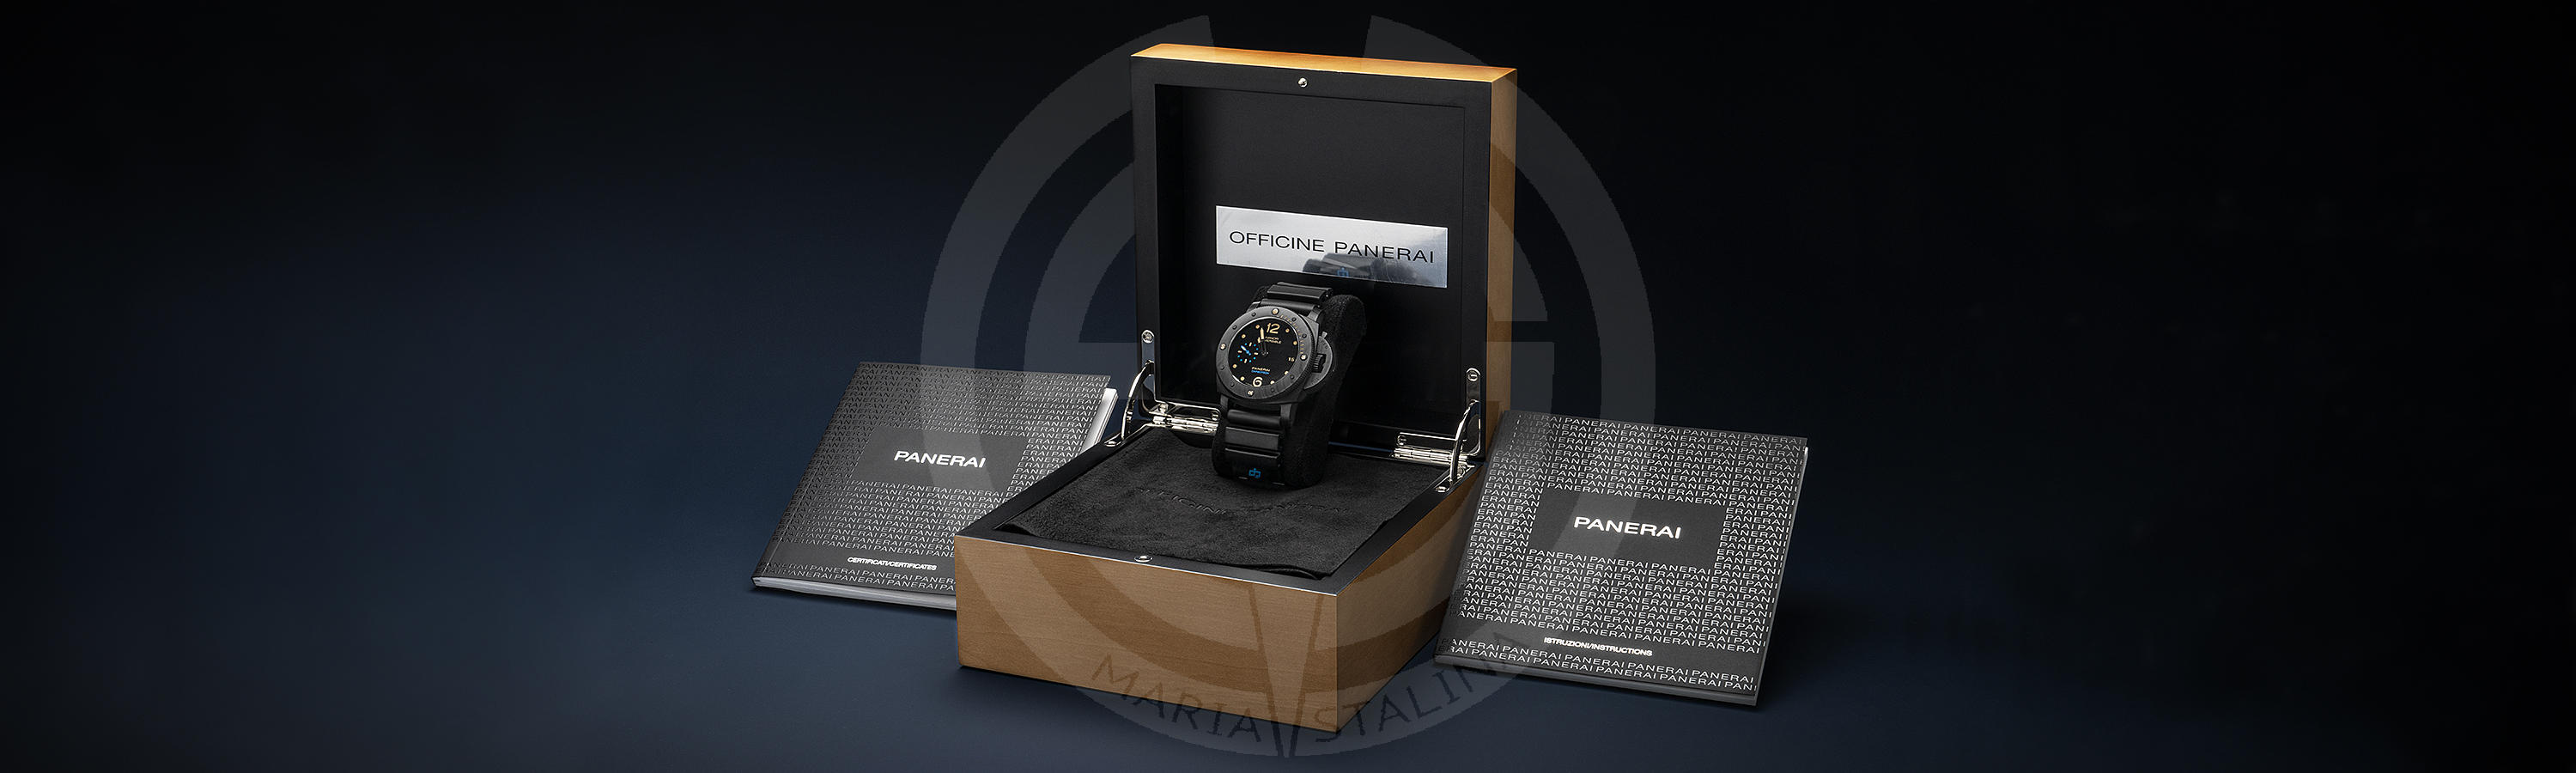 Panerai часы Submersible Carbotech™ 47 мм